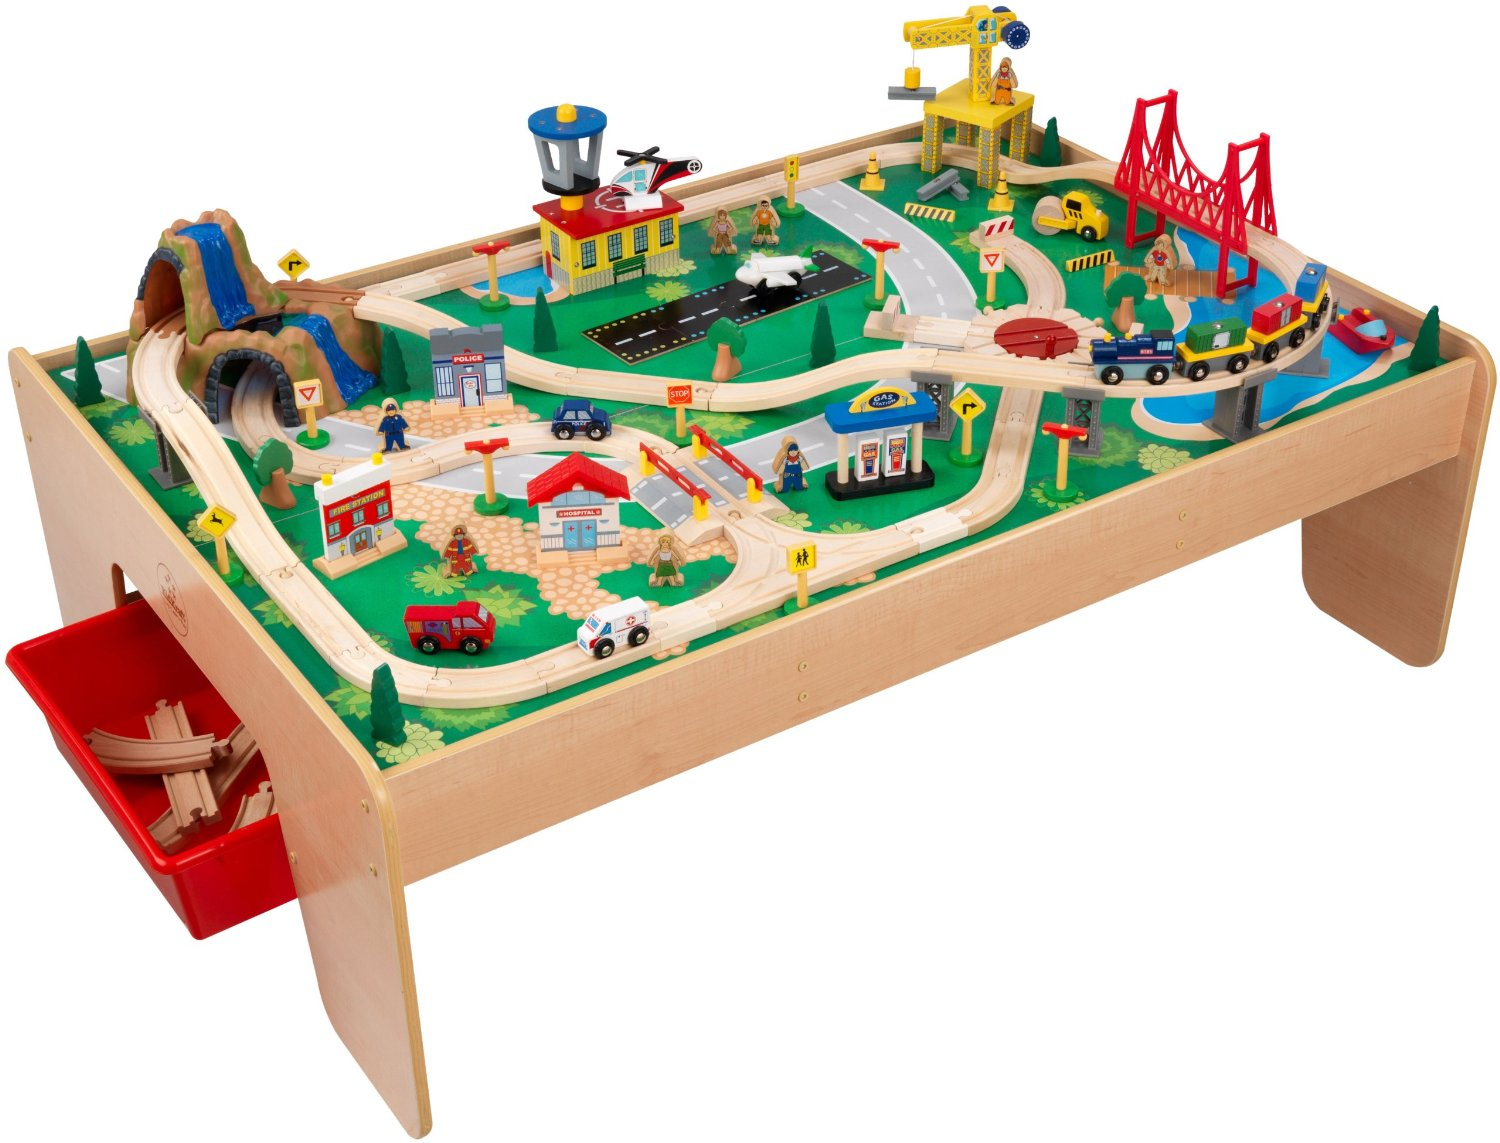 Childrens Play Table Best Train Sets For Kids What Are The Options